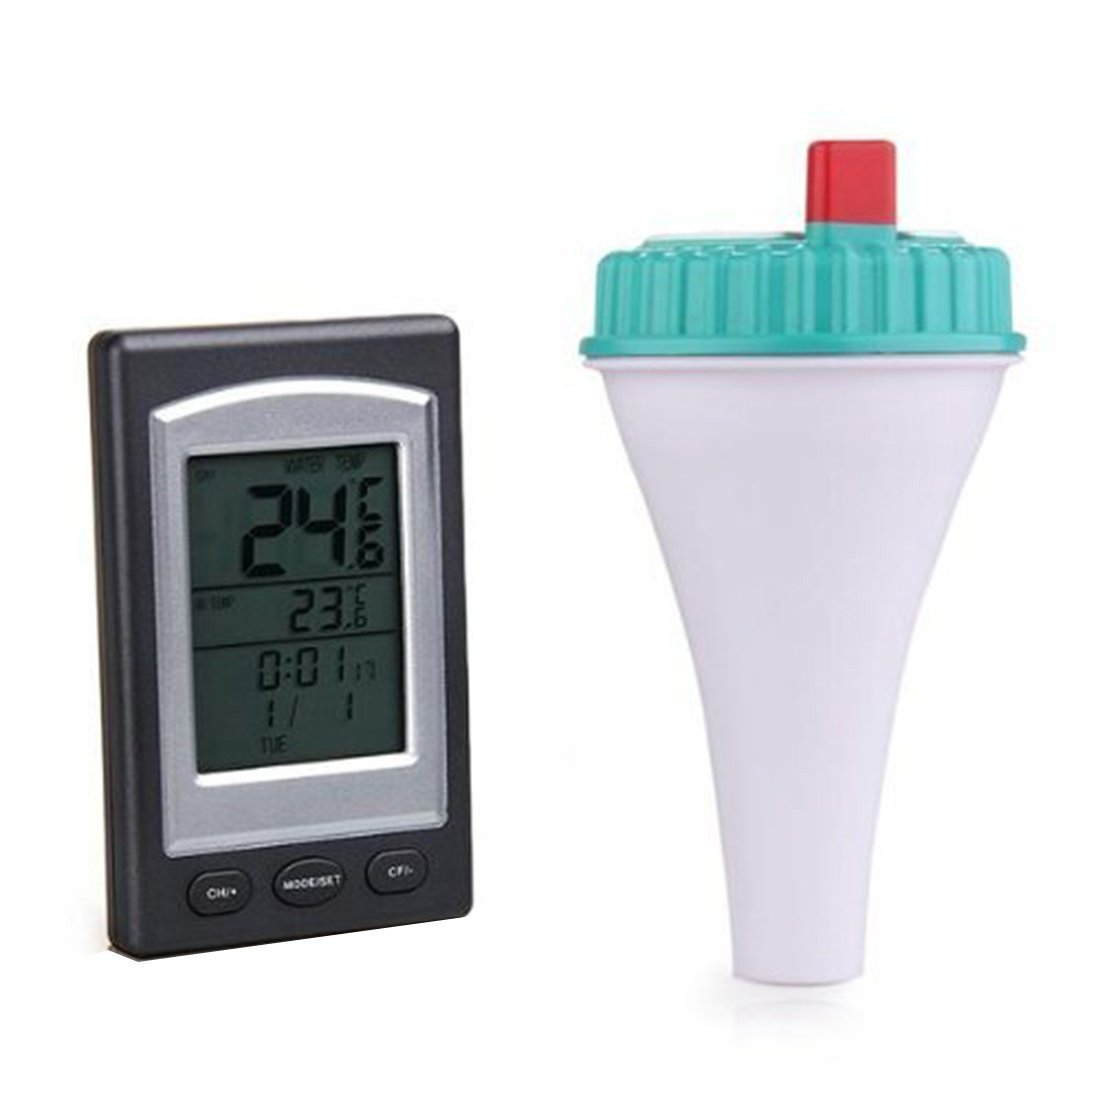 Wireless Lcd Display Swimming Pool SPA Floating Thermometer Luwu-Store SHOMLU1164